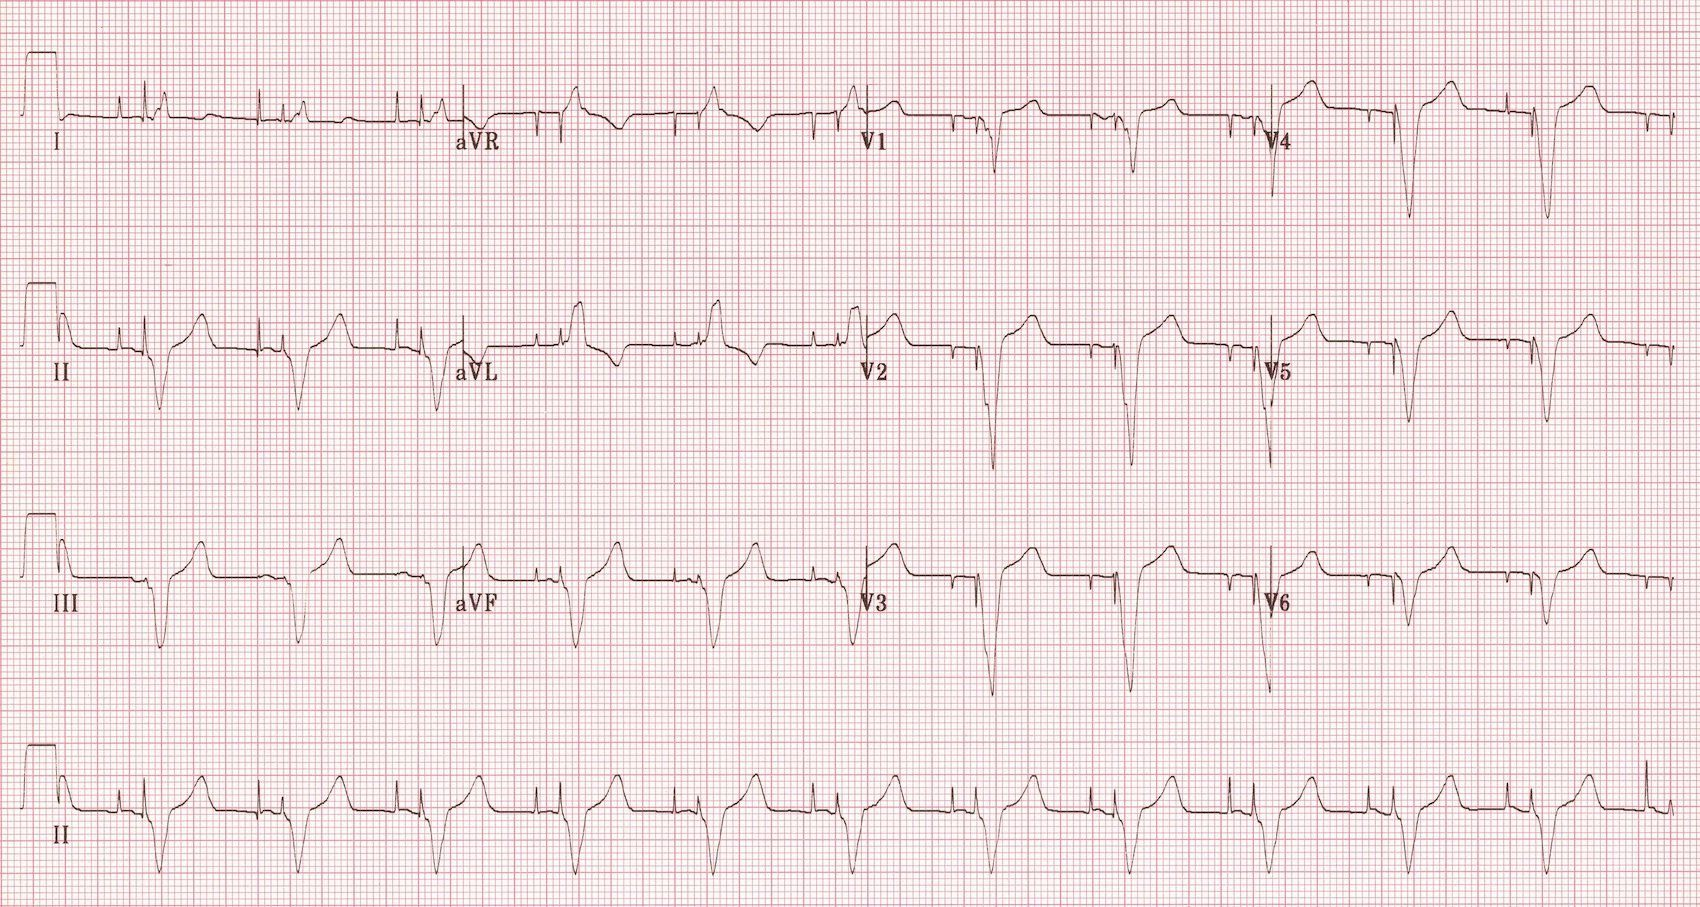 There's strip ecg atrial fibrillation cleared